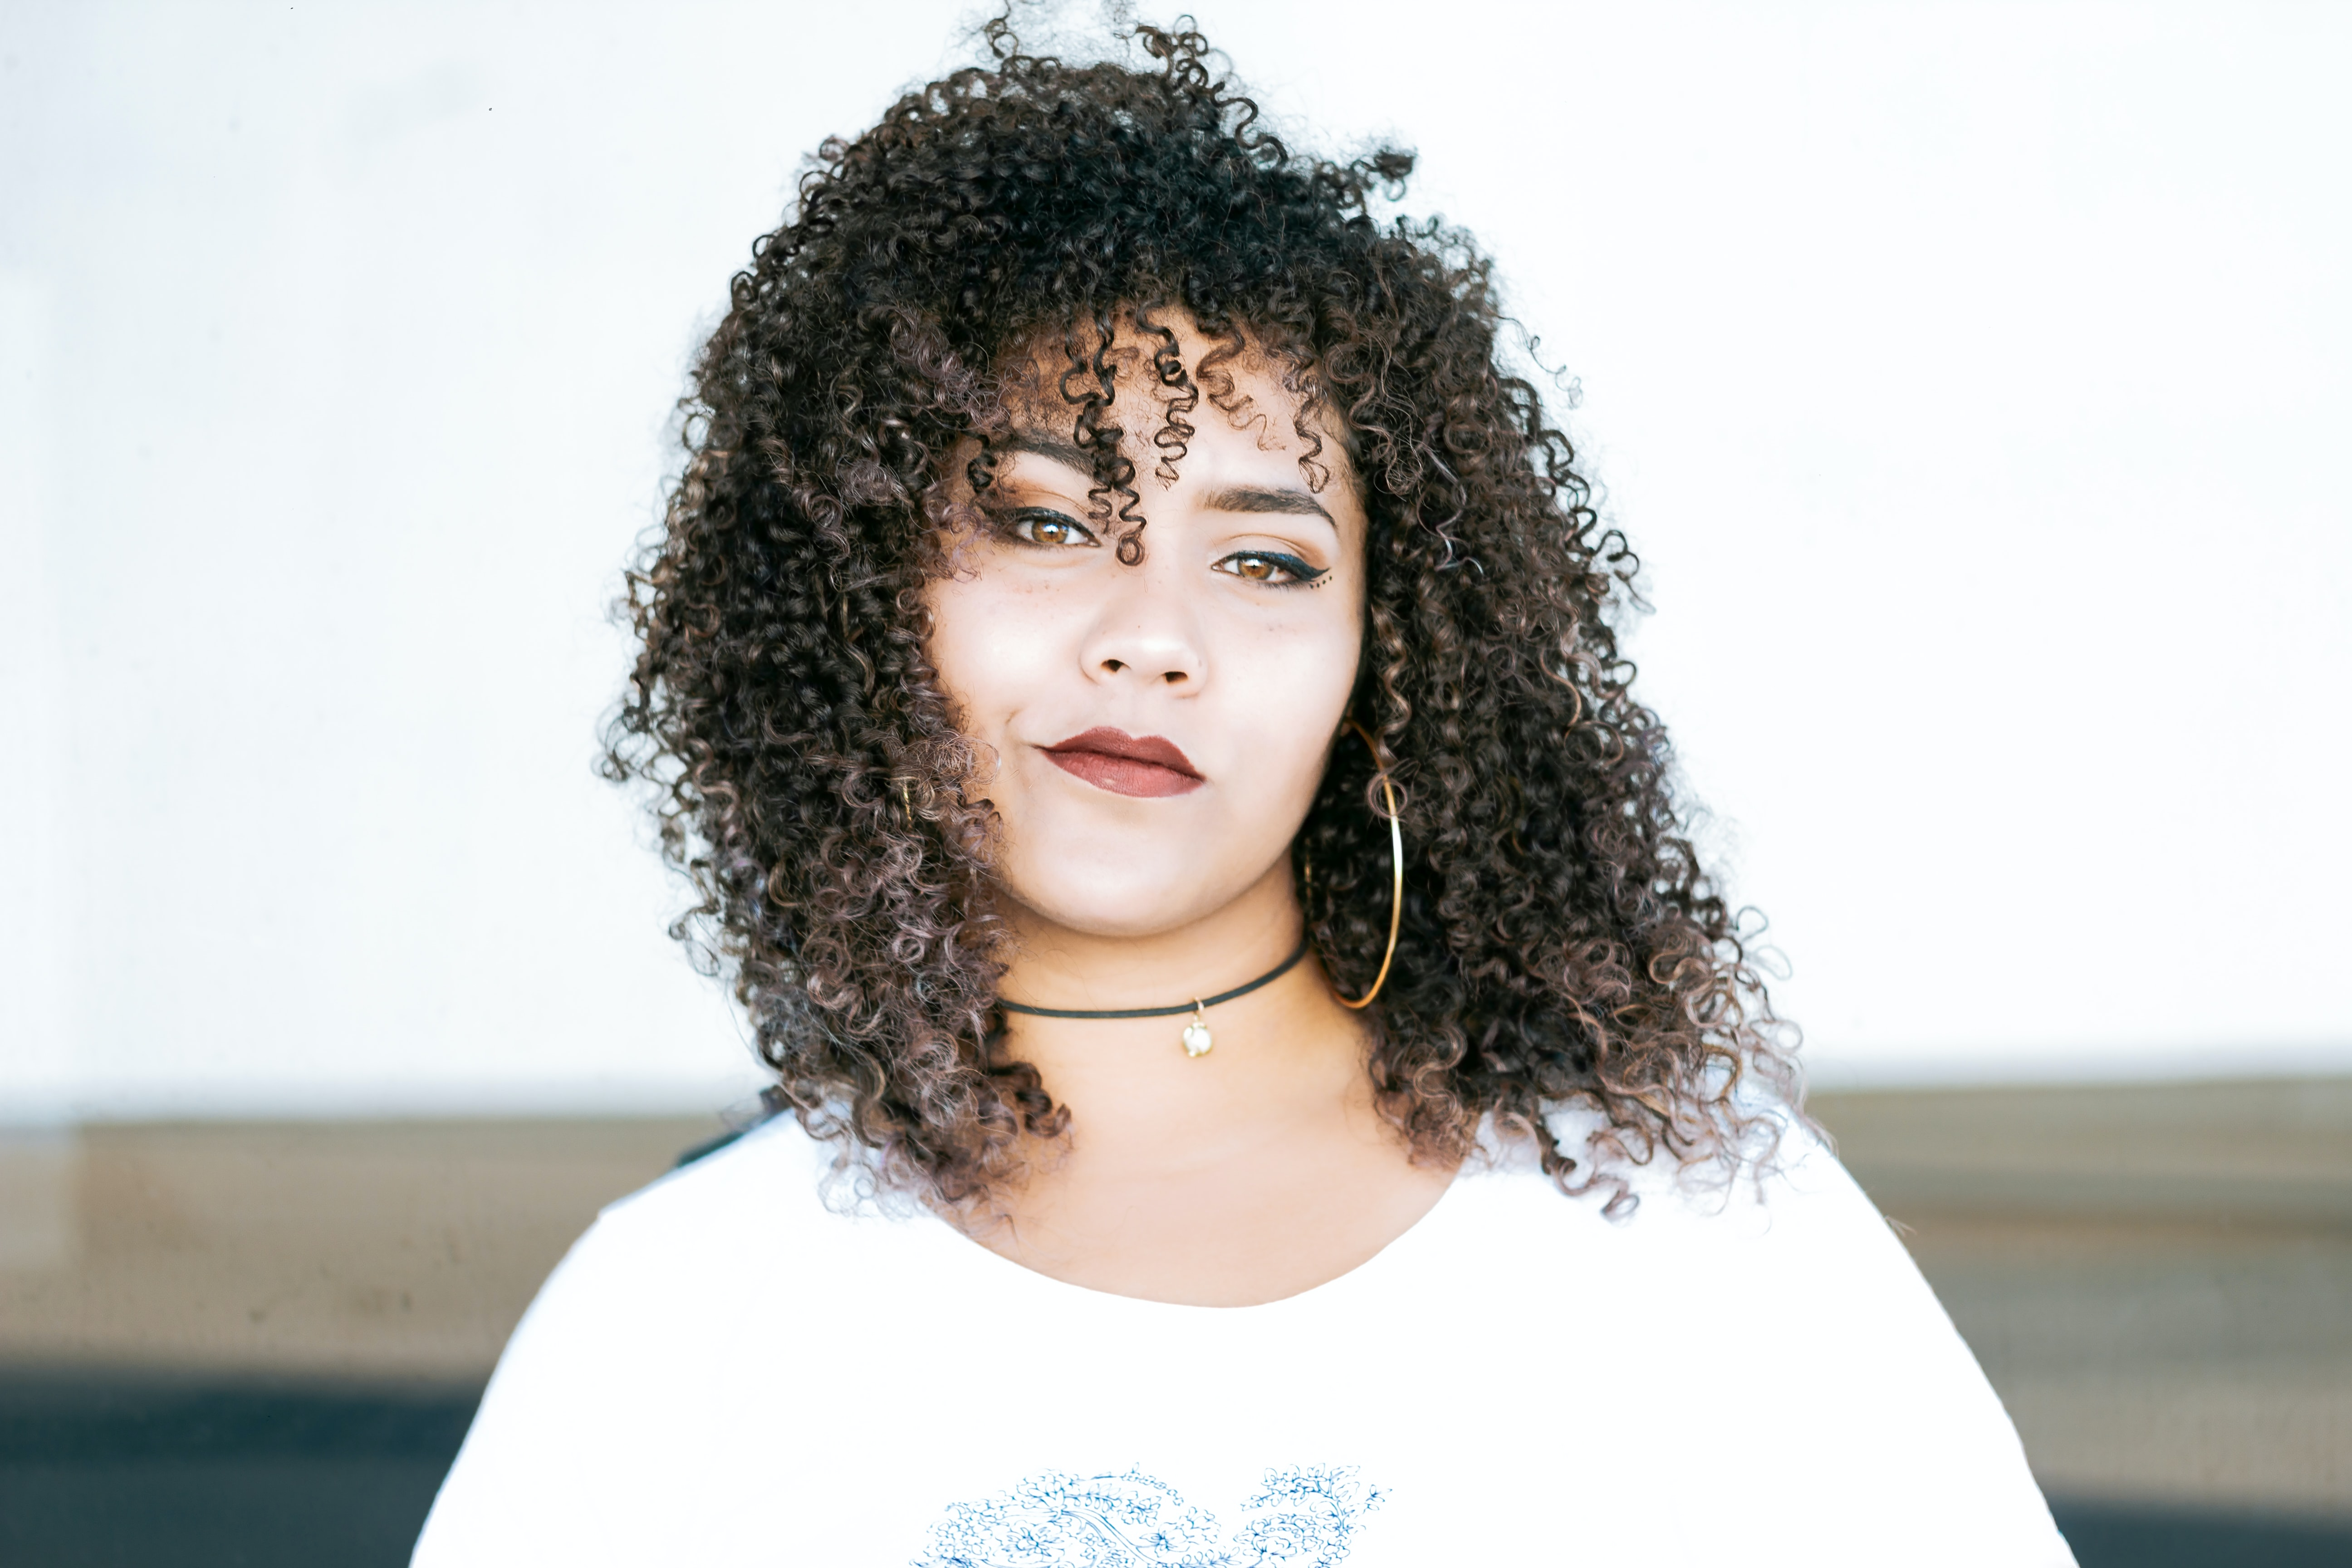 Woman with curly hair smiles confidently